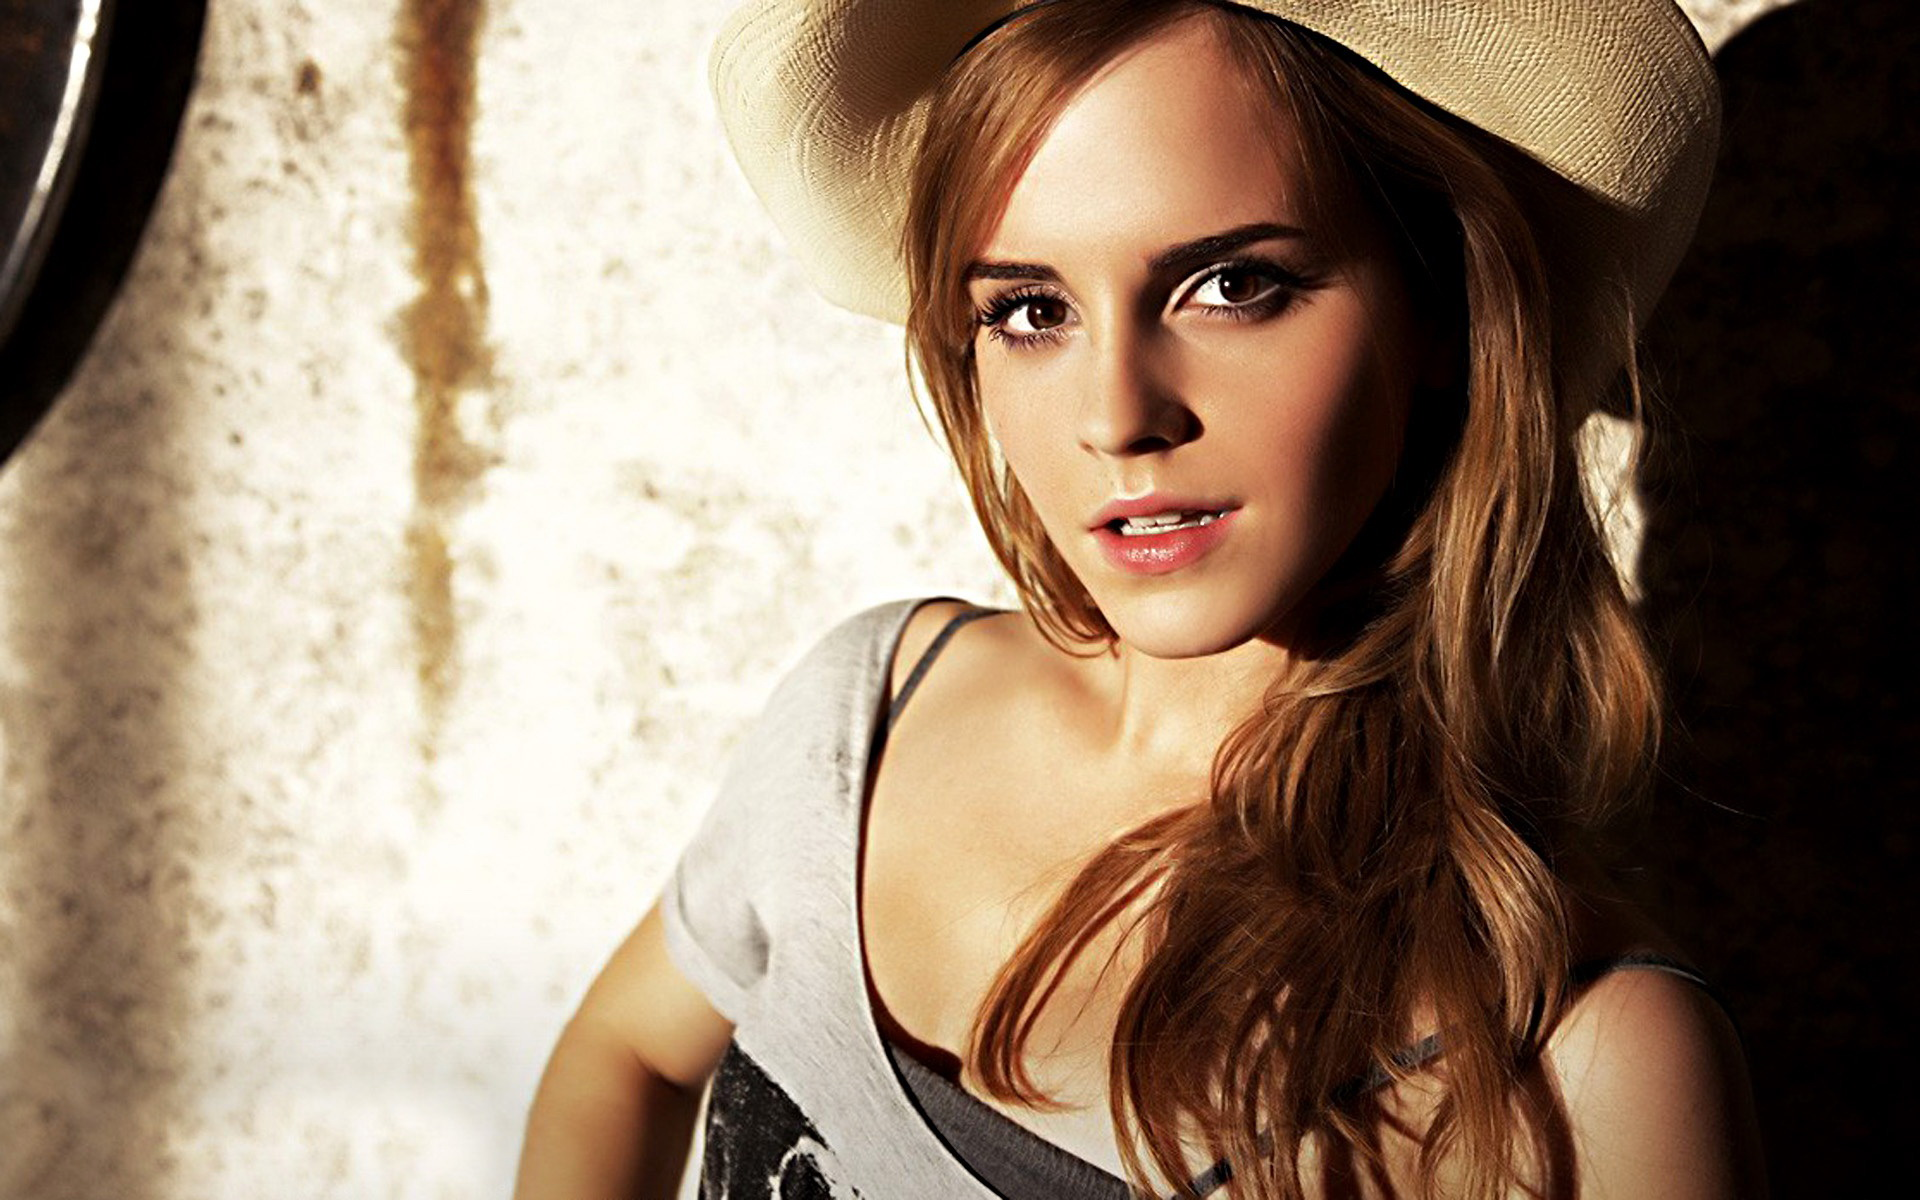 Free Emma Watson Mobile Download Lovely Cute Face Look Background Hd Images